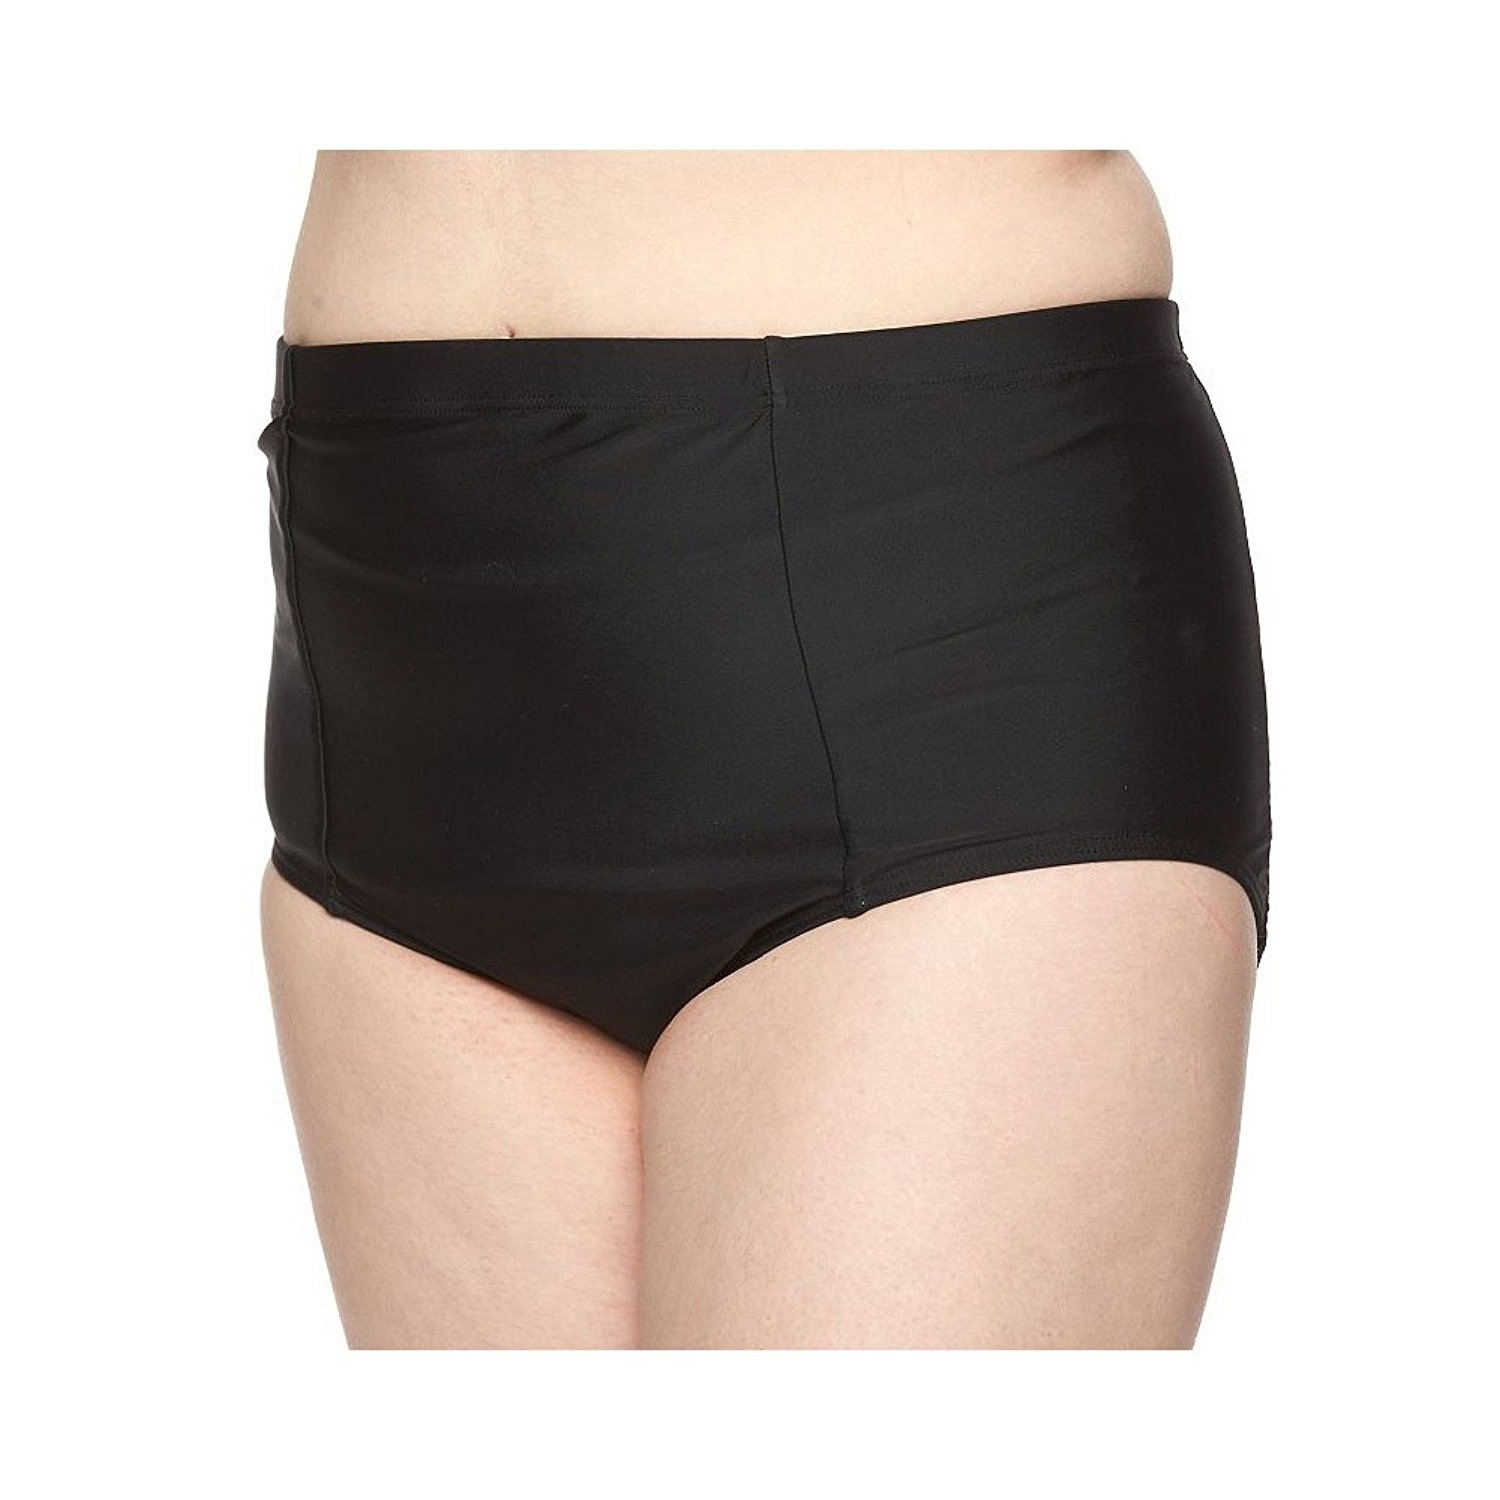 aec3fba082ce Get Quotations · Plus Size Croft & Barrow High-Waisted Bikini Bottoms,  Women's, ...